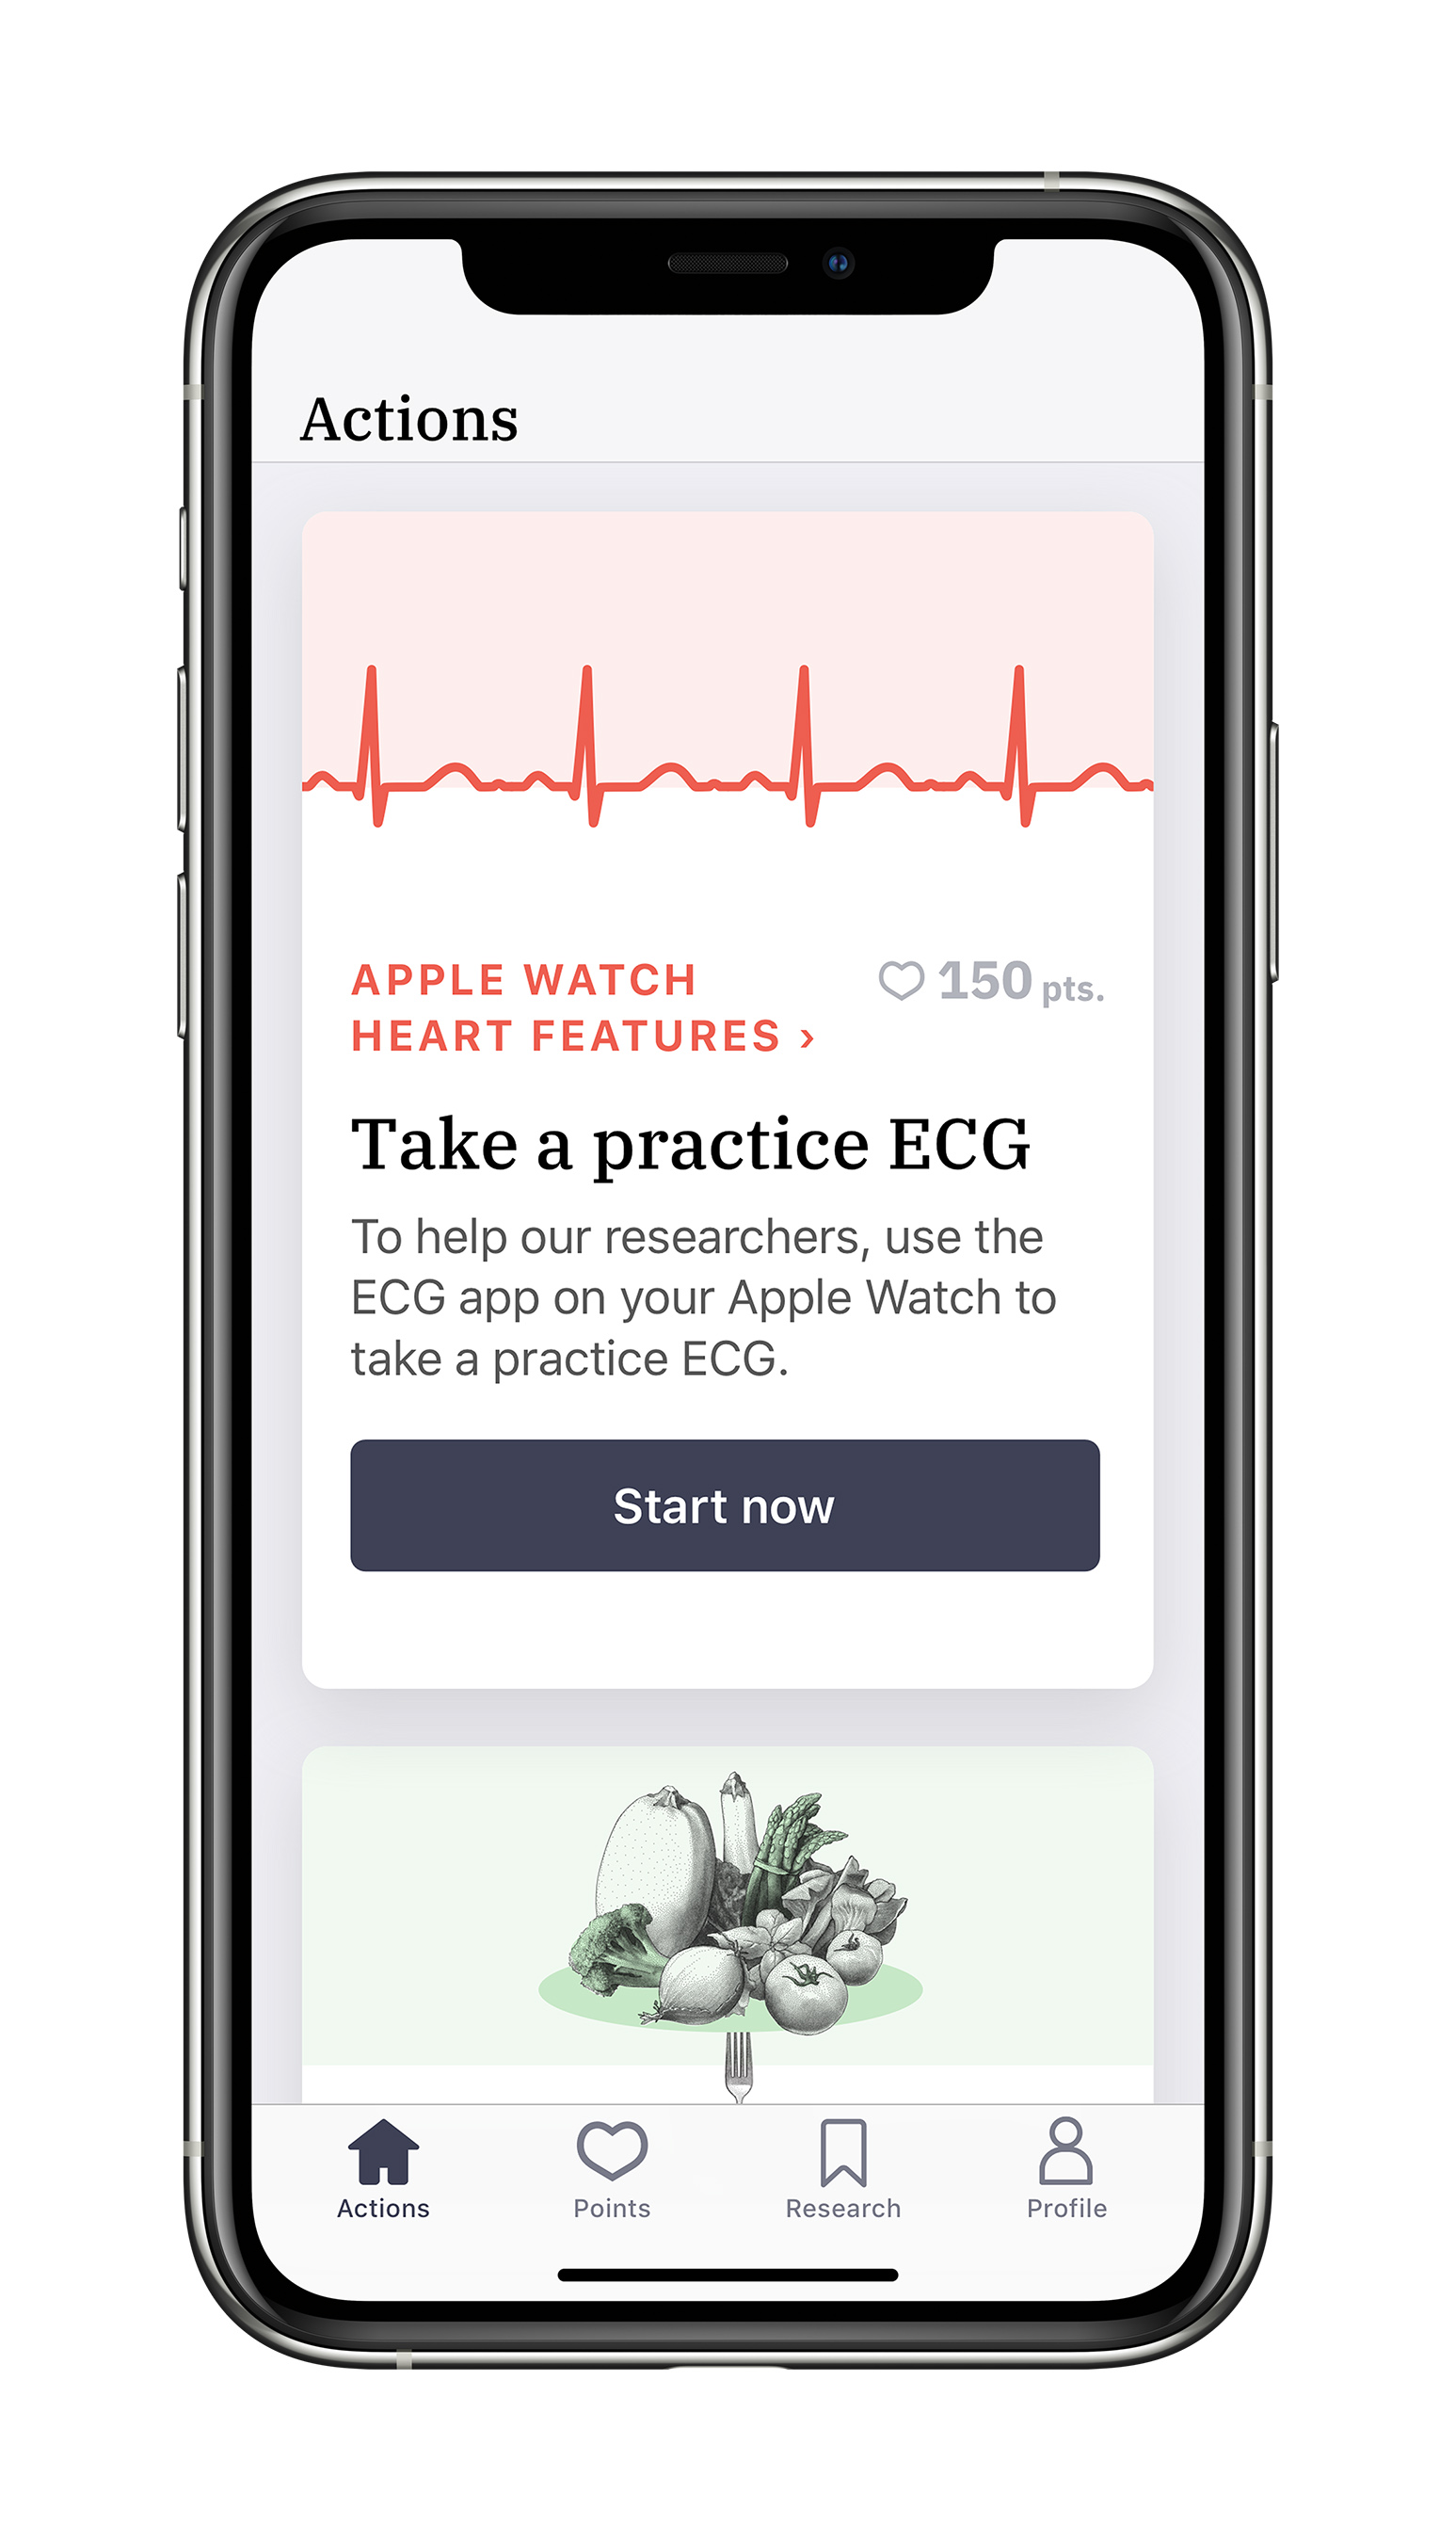 Study participation will help researchers understand whether the Heartline™ Study app and heart health features on Apple Watch can help with earlier detection of AFib and improve overall health outcomes.